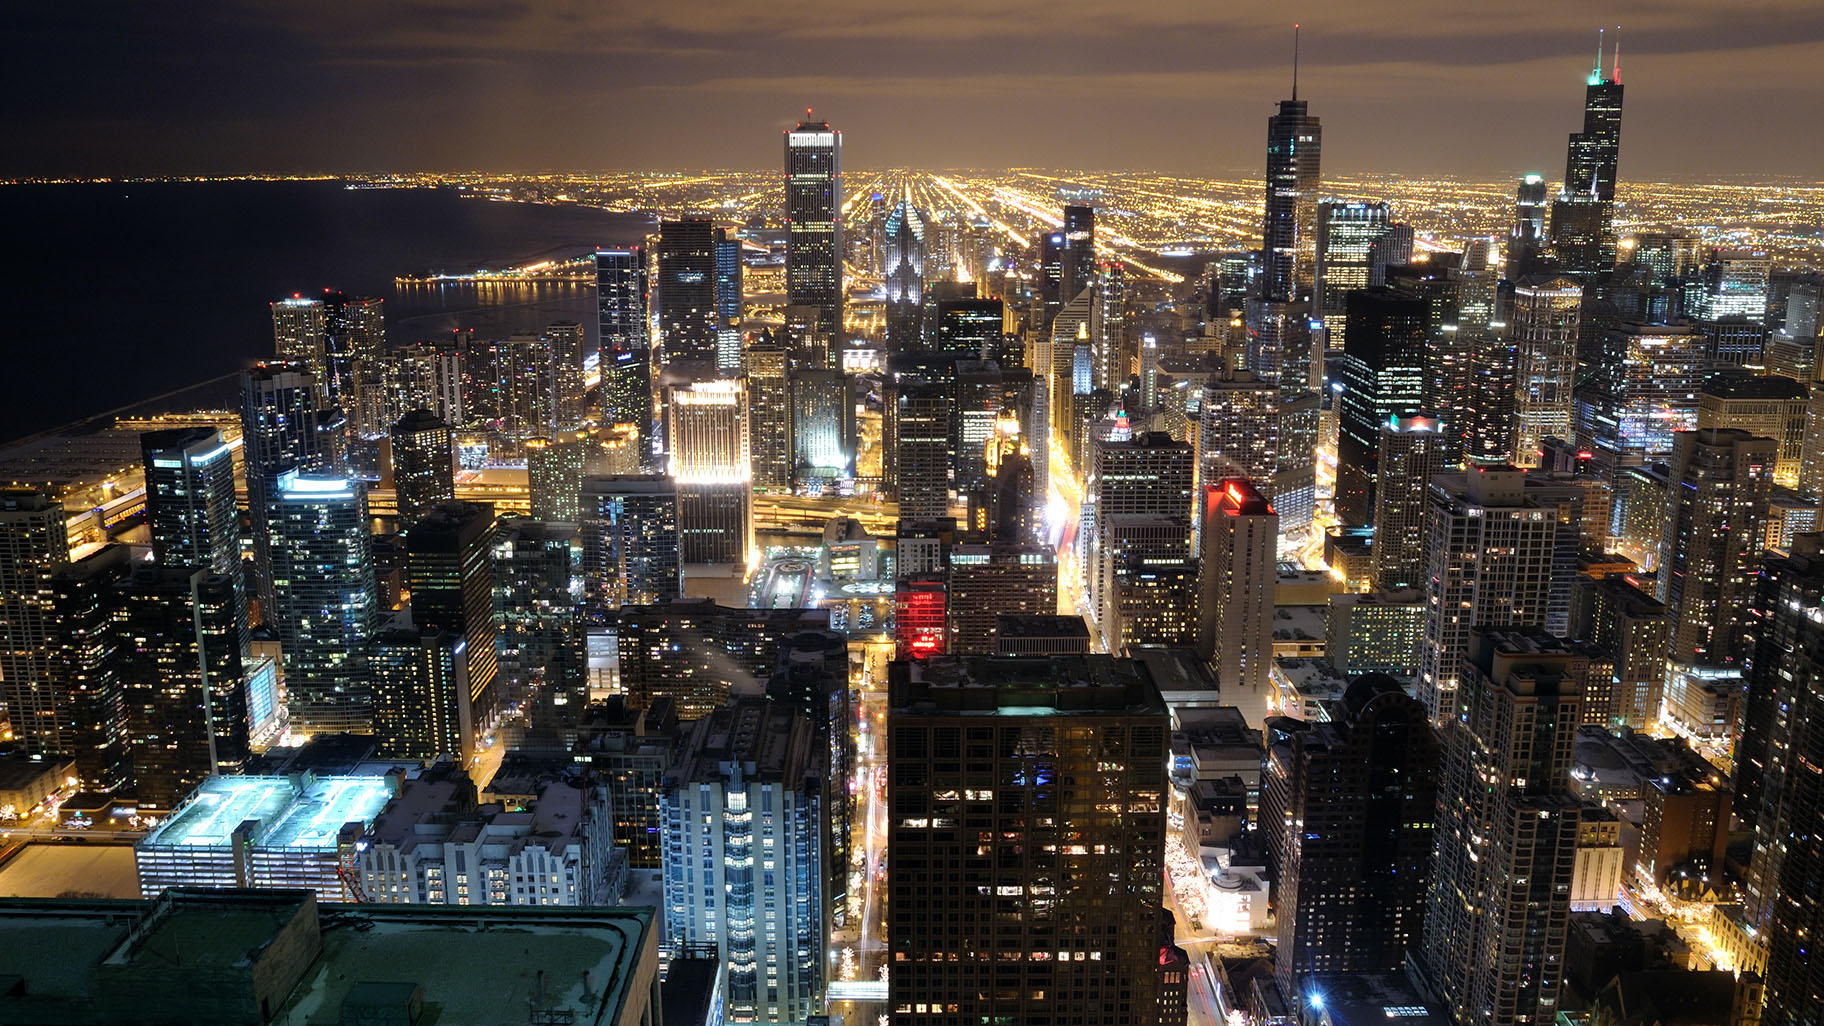 Artificial Light is Changing Animal Behavior in Chicago, Study Finds